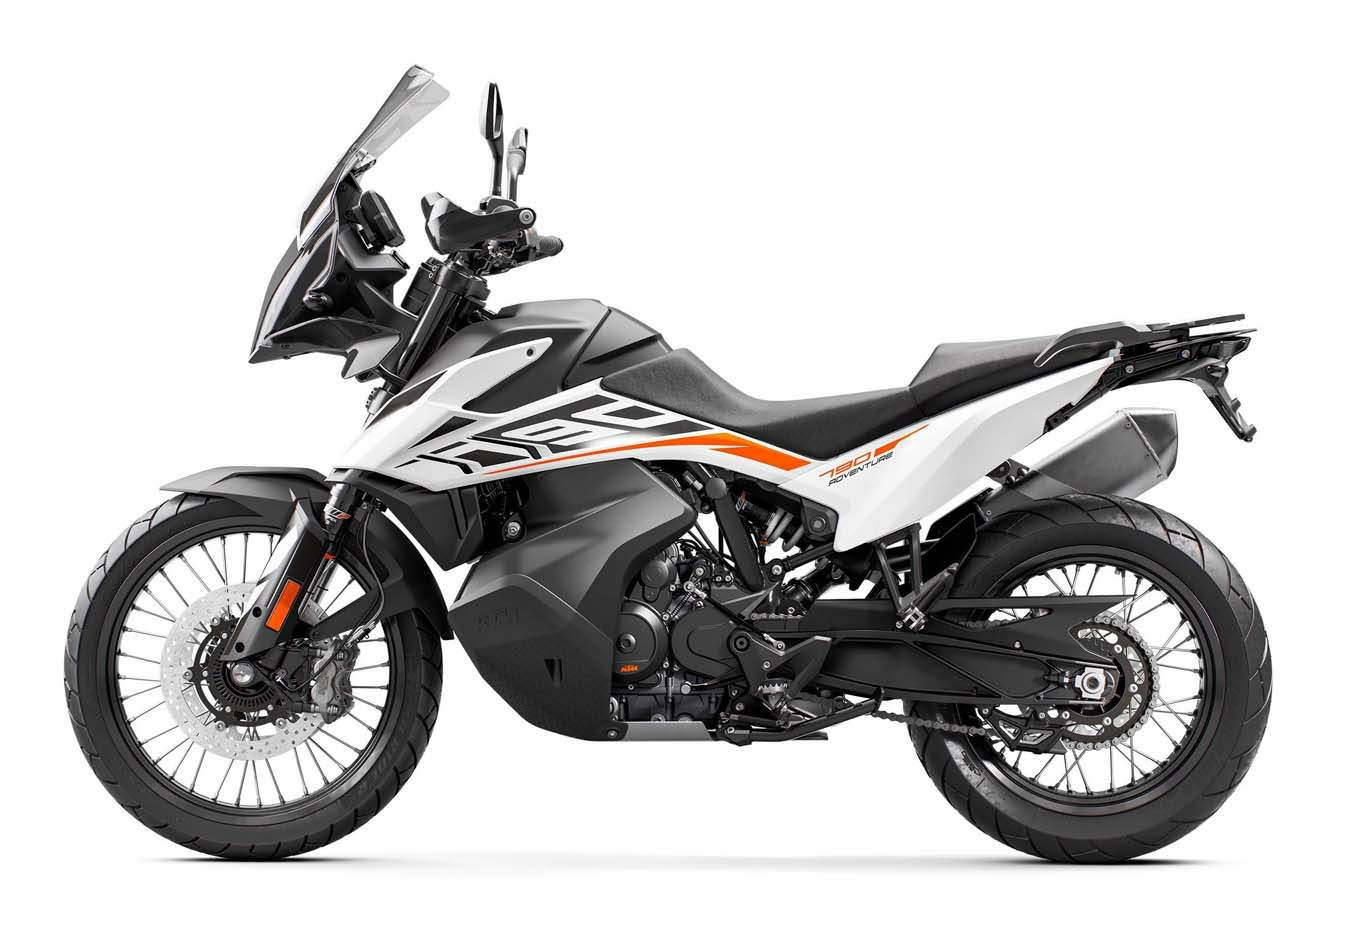 KTM 790 Adventure technical specifications